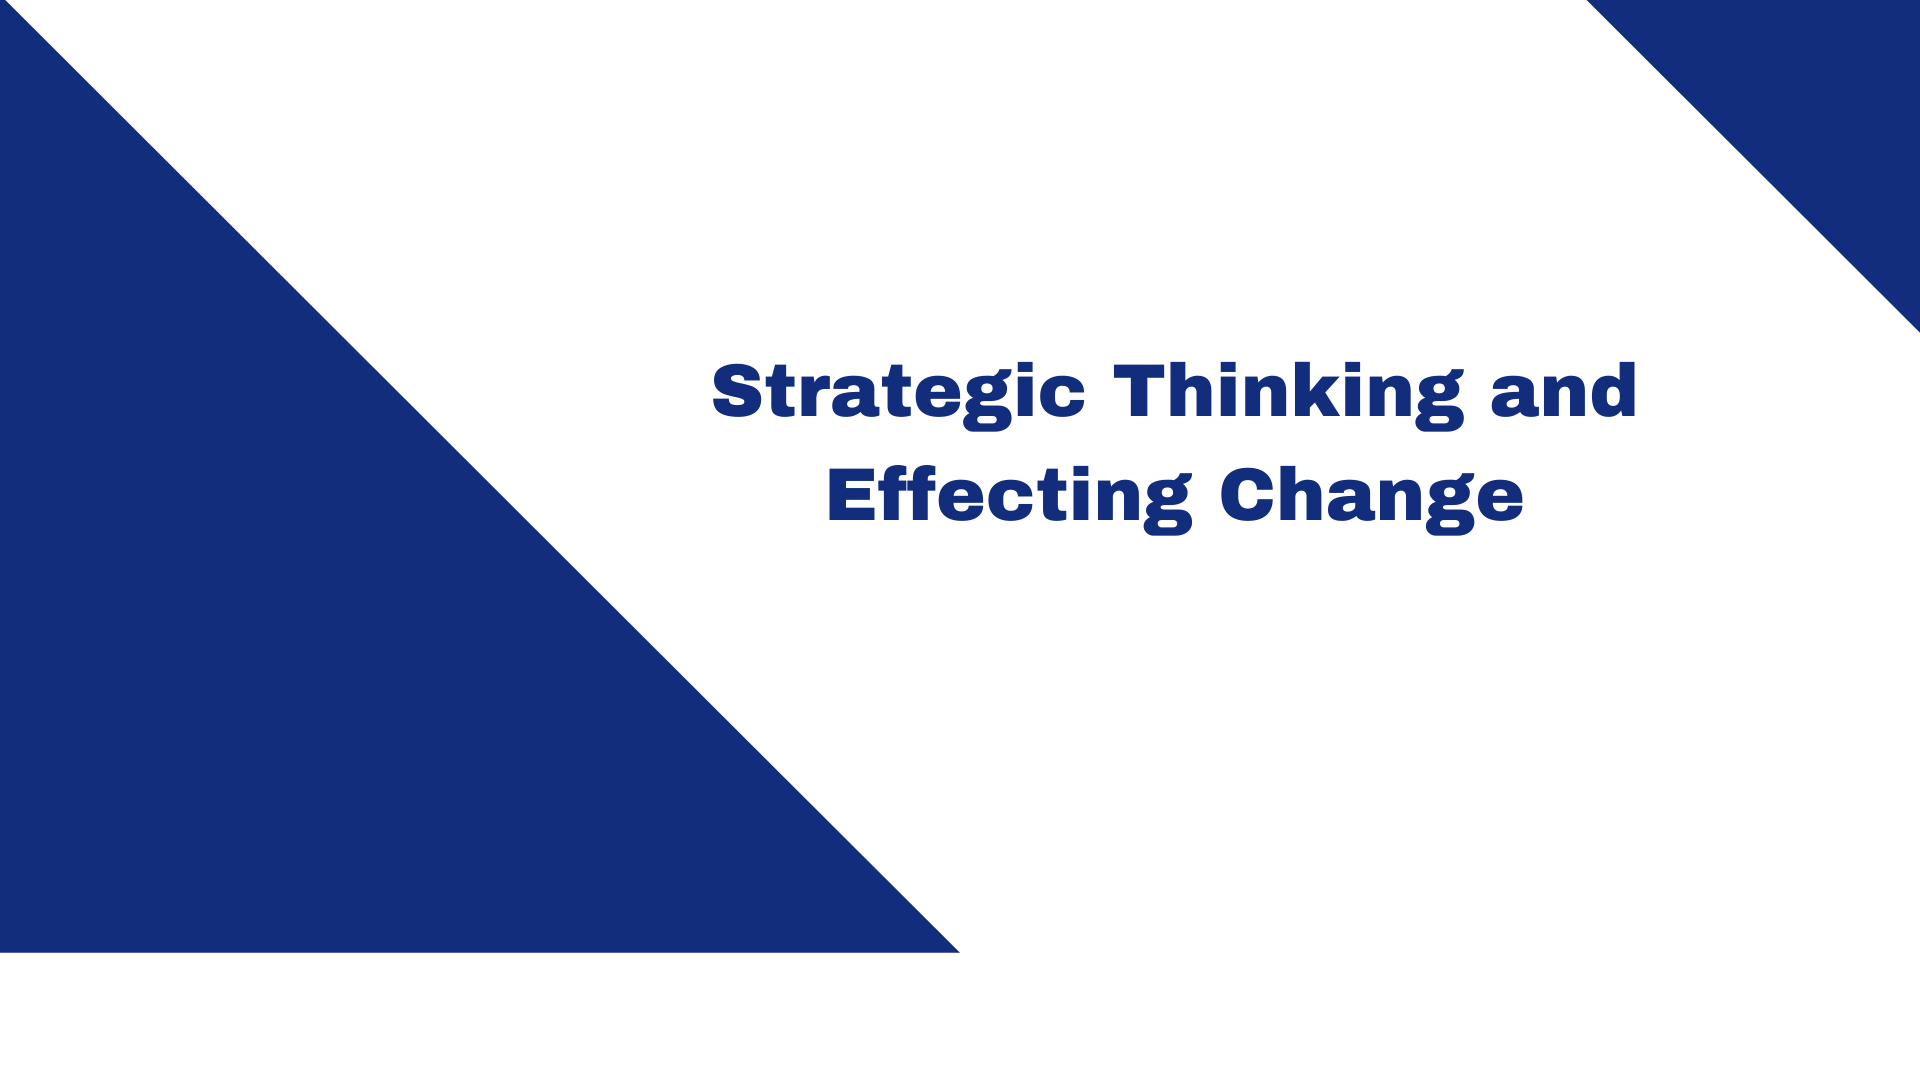 Strategic Thinking and Effecting Change: TNT Express